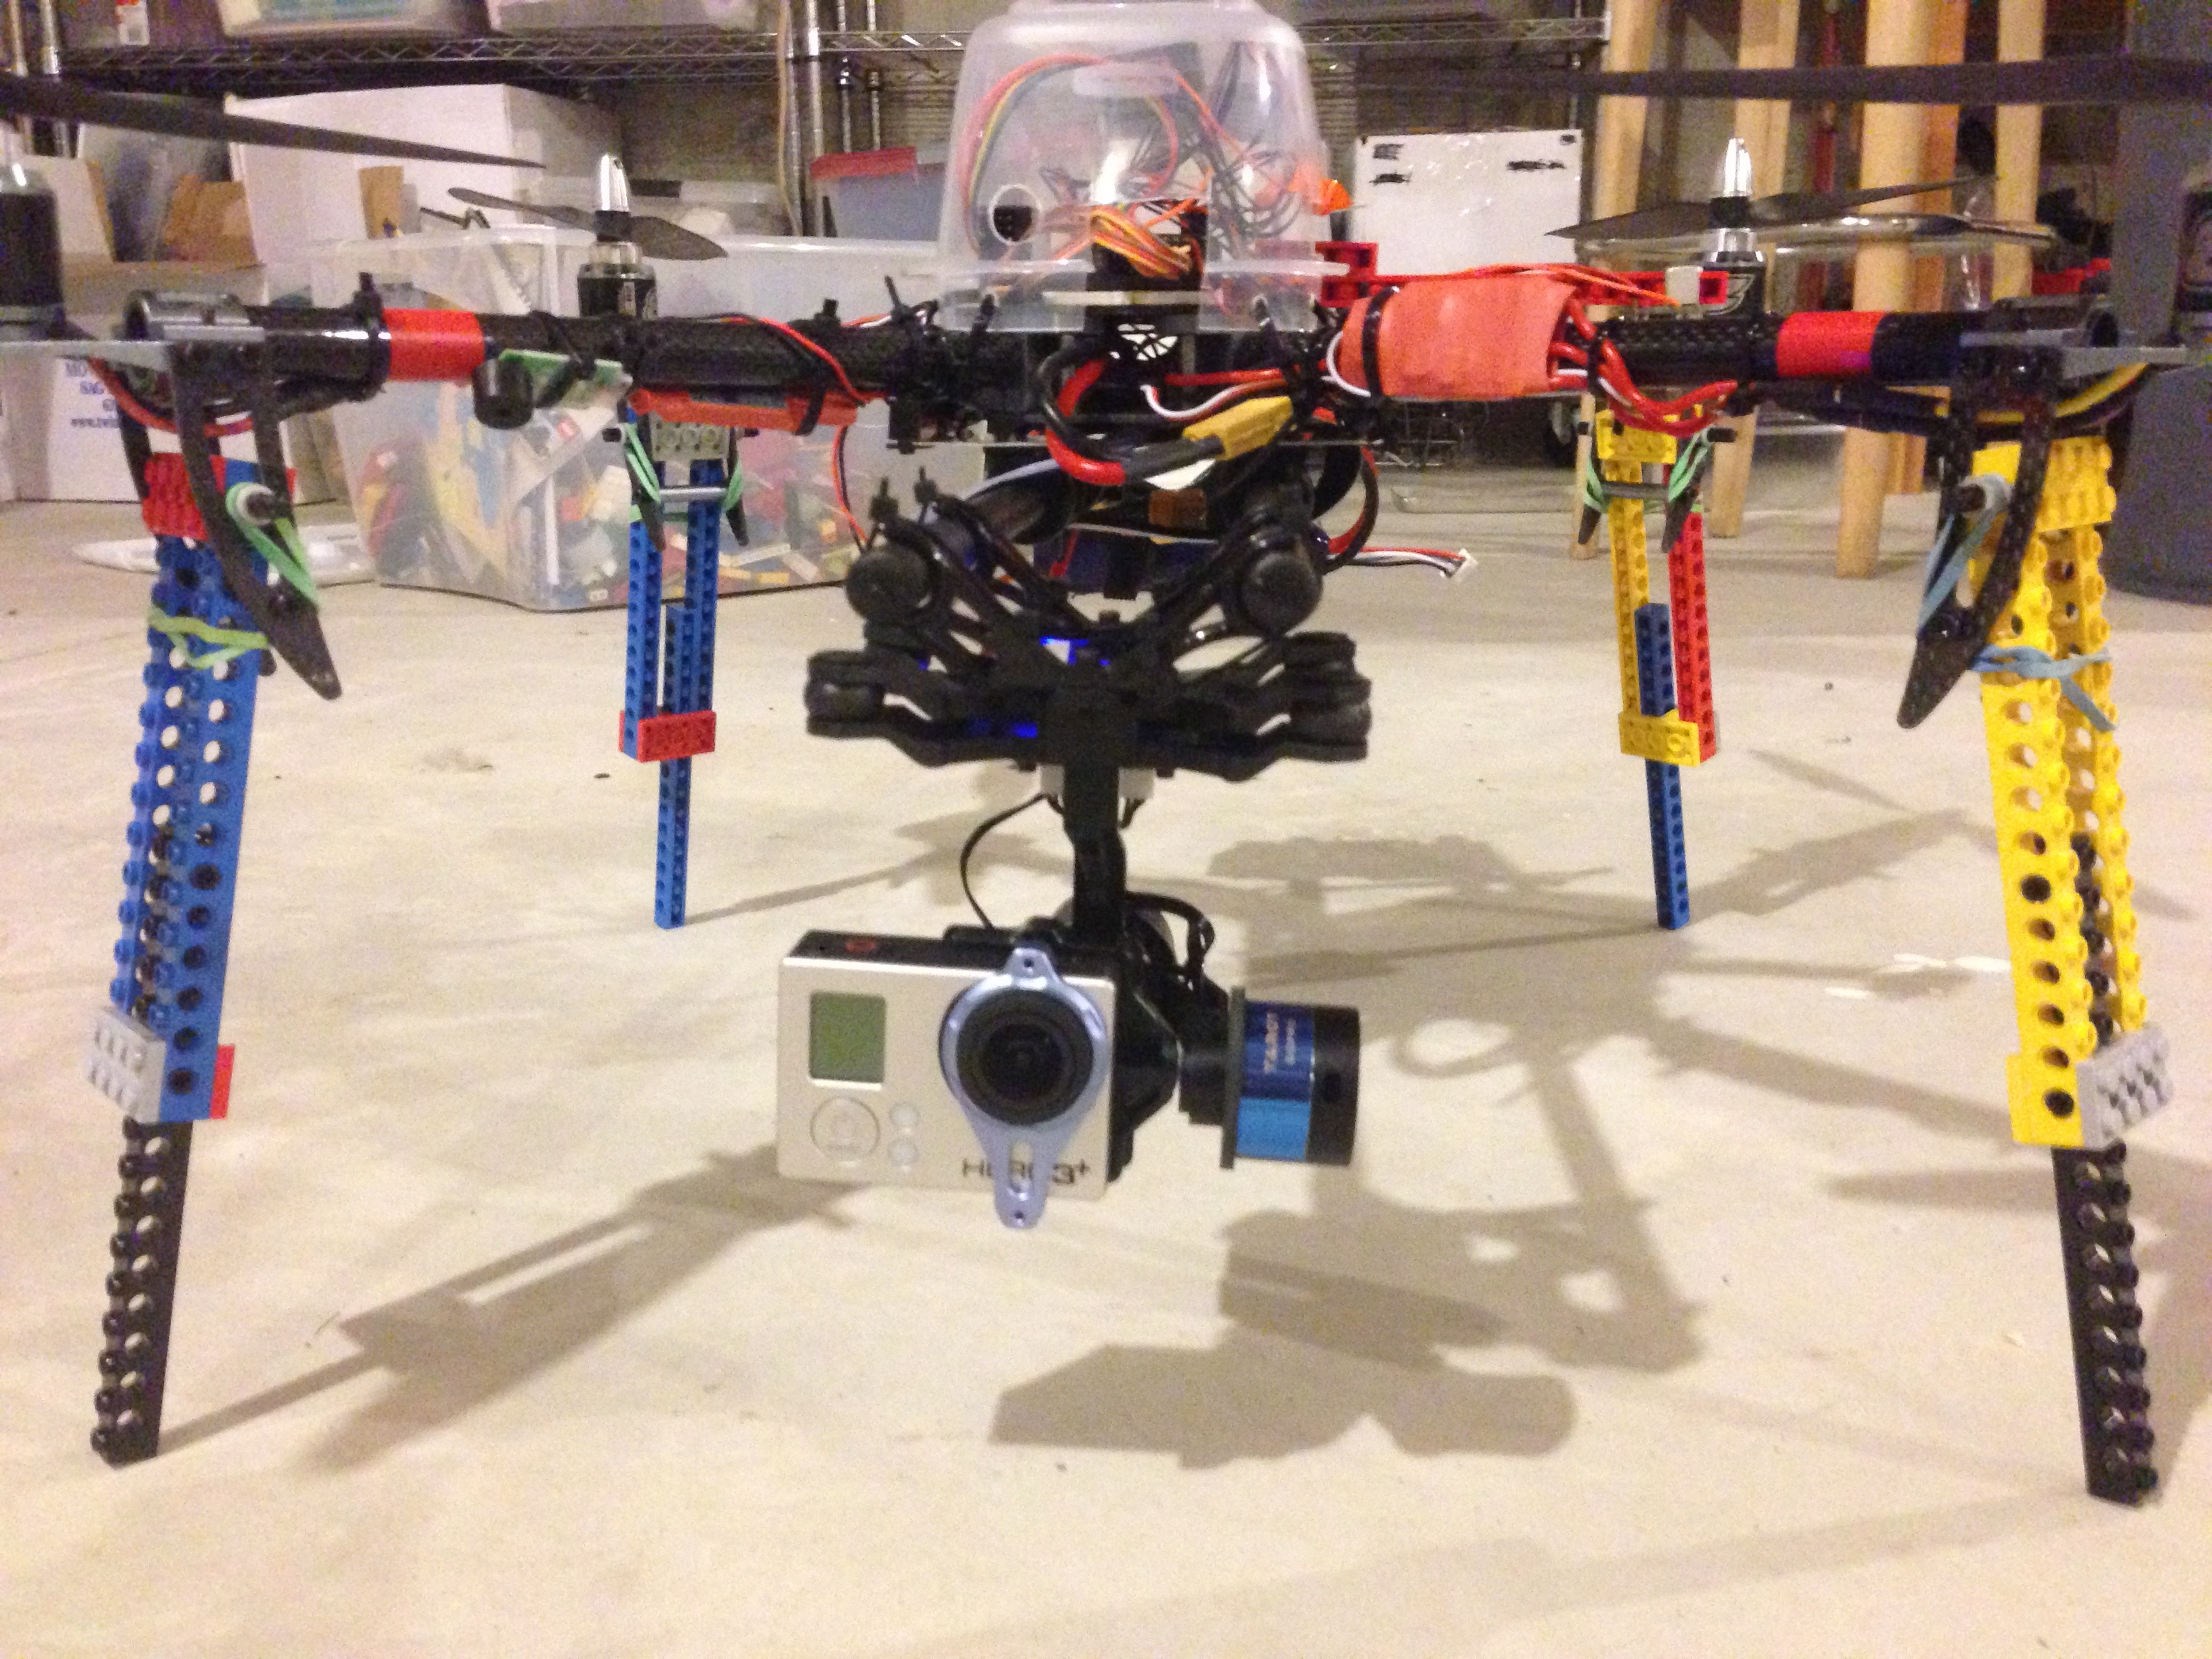 Quadcopter with Lego legs